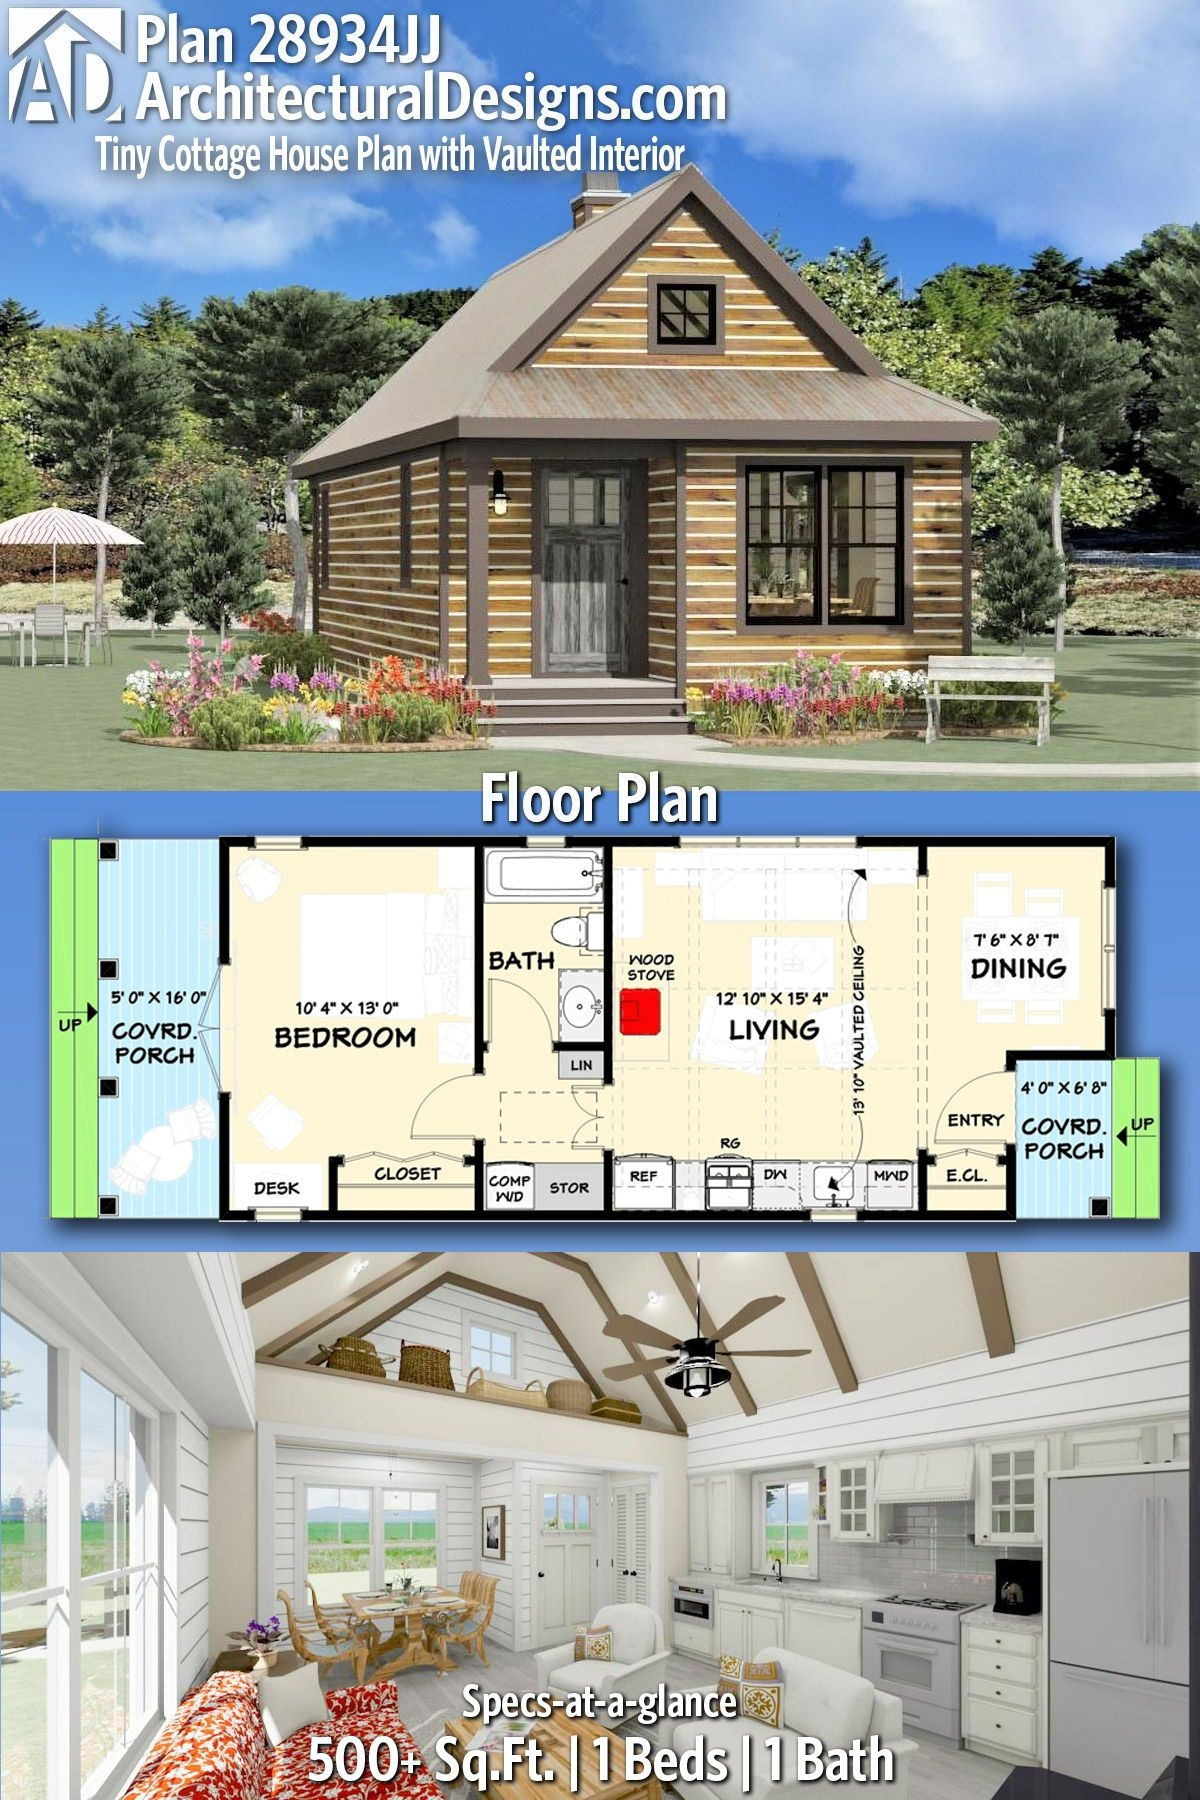 Comely Small Cabin Plans with Loft and Porch On Extraordinary Plan Jj Tiny Cottage House Plan with Vaulted Interior On Small Cabin Plans with Loft and Porch